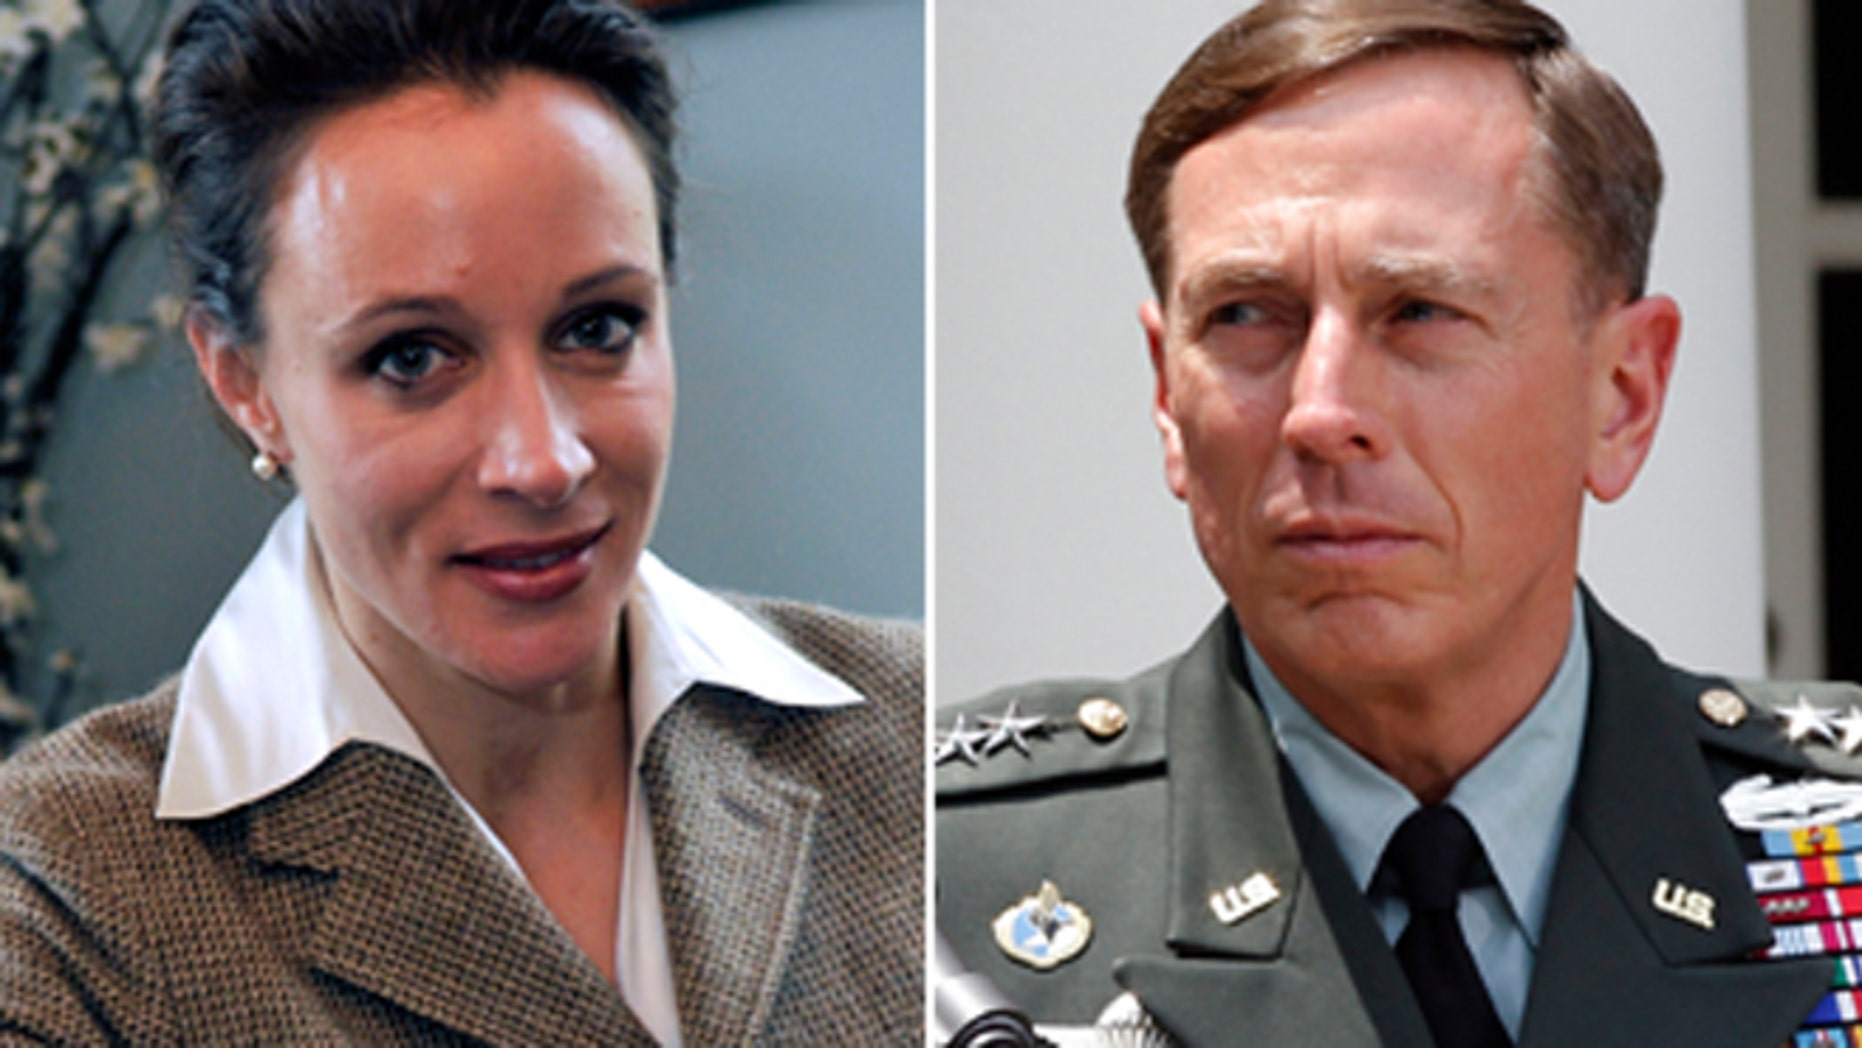 CIA Director David Petraeus, right, announced his resignation after admitting to an extramarital affair, which Fox News has learned was with his biographer, Paula Broadwell, left.